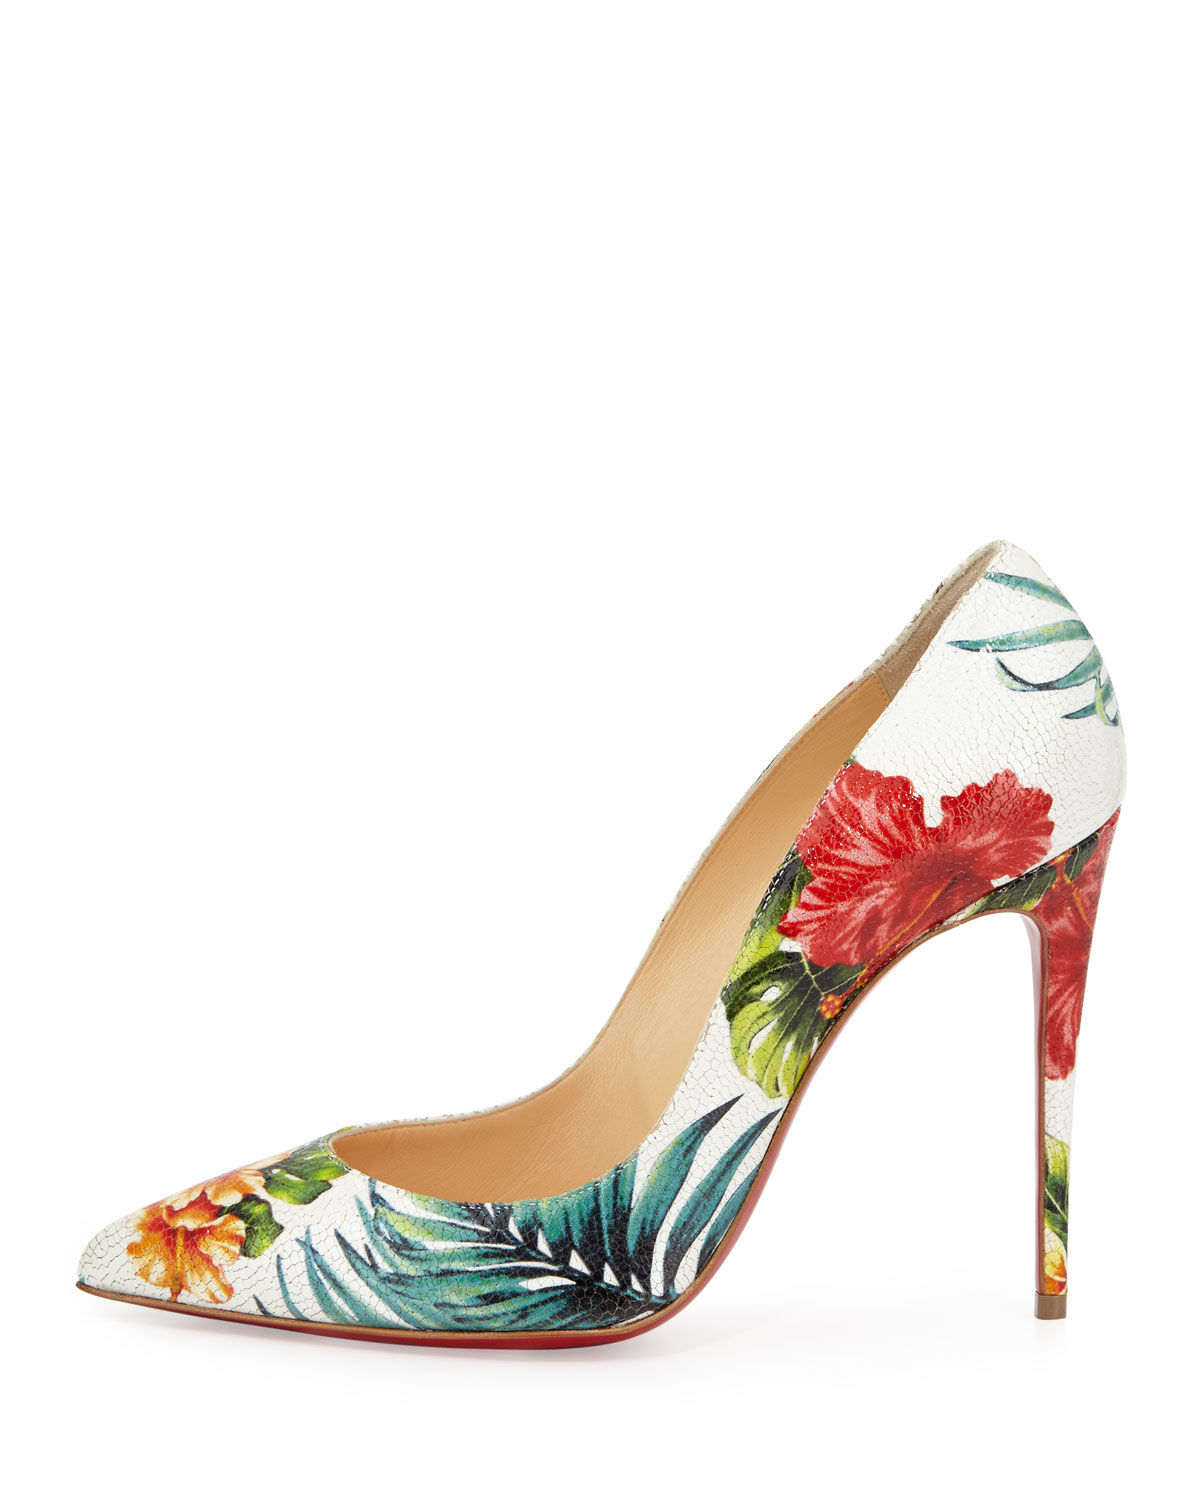 Christian Louboutin Pigalle Follies Hawaii Pumps In White